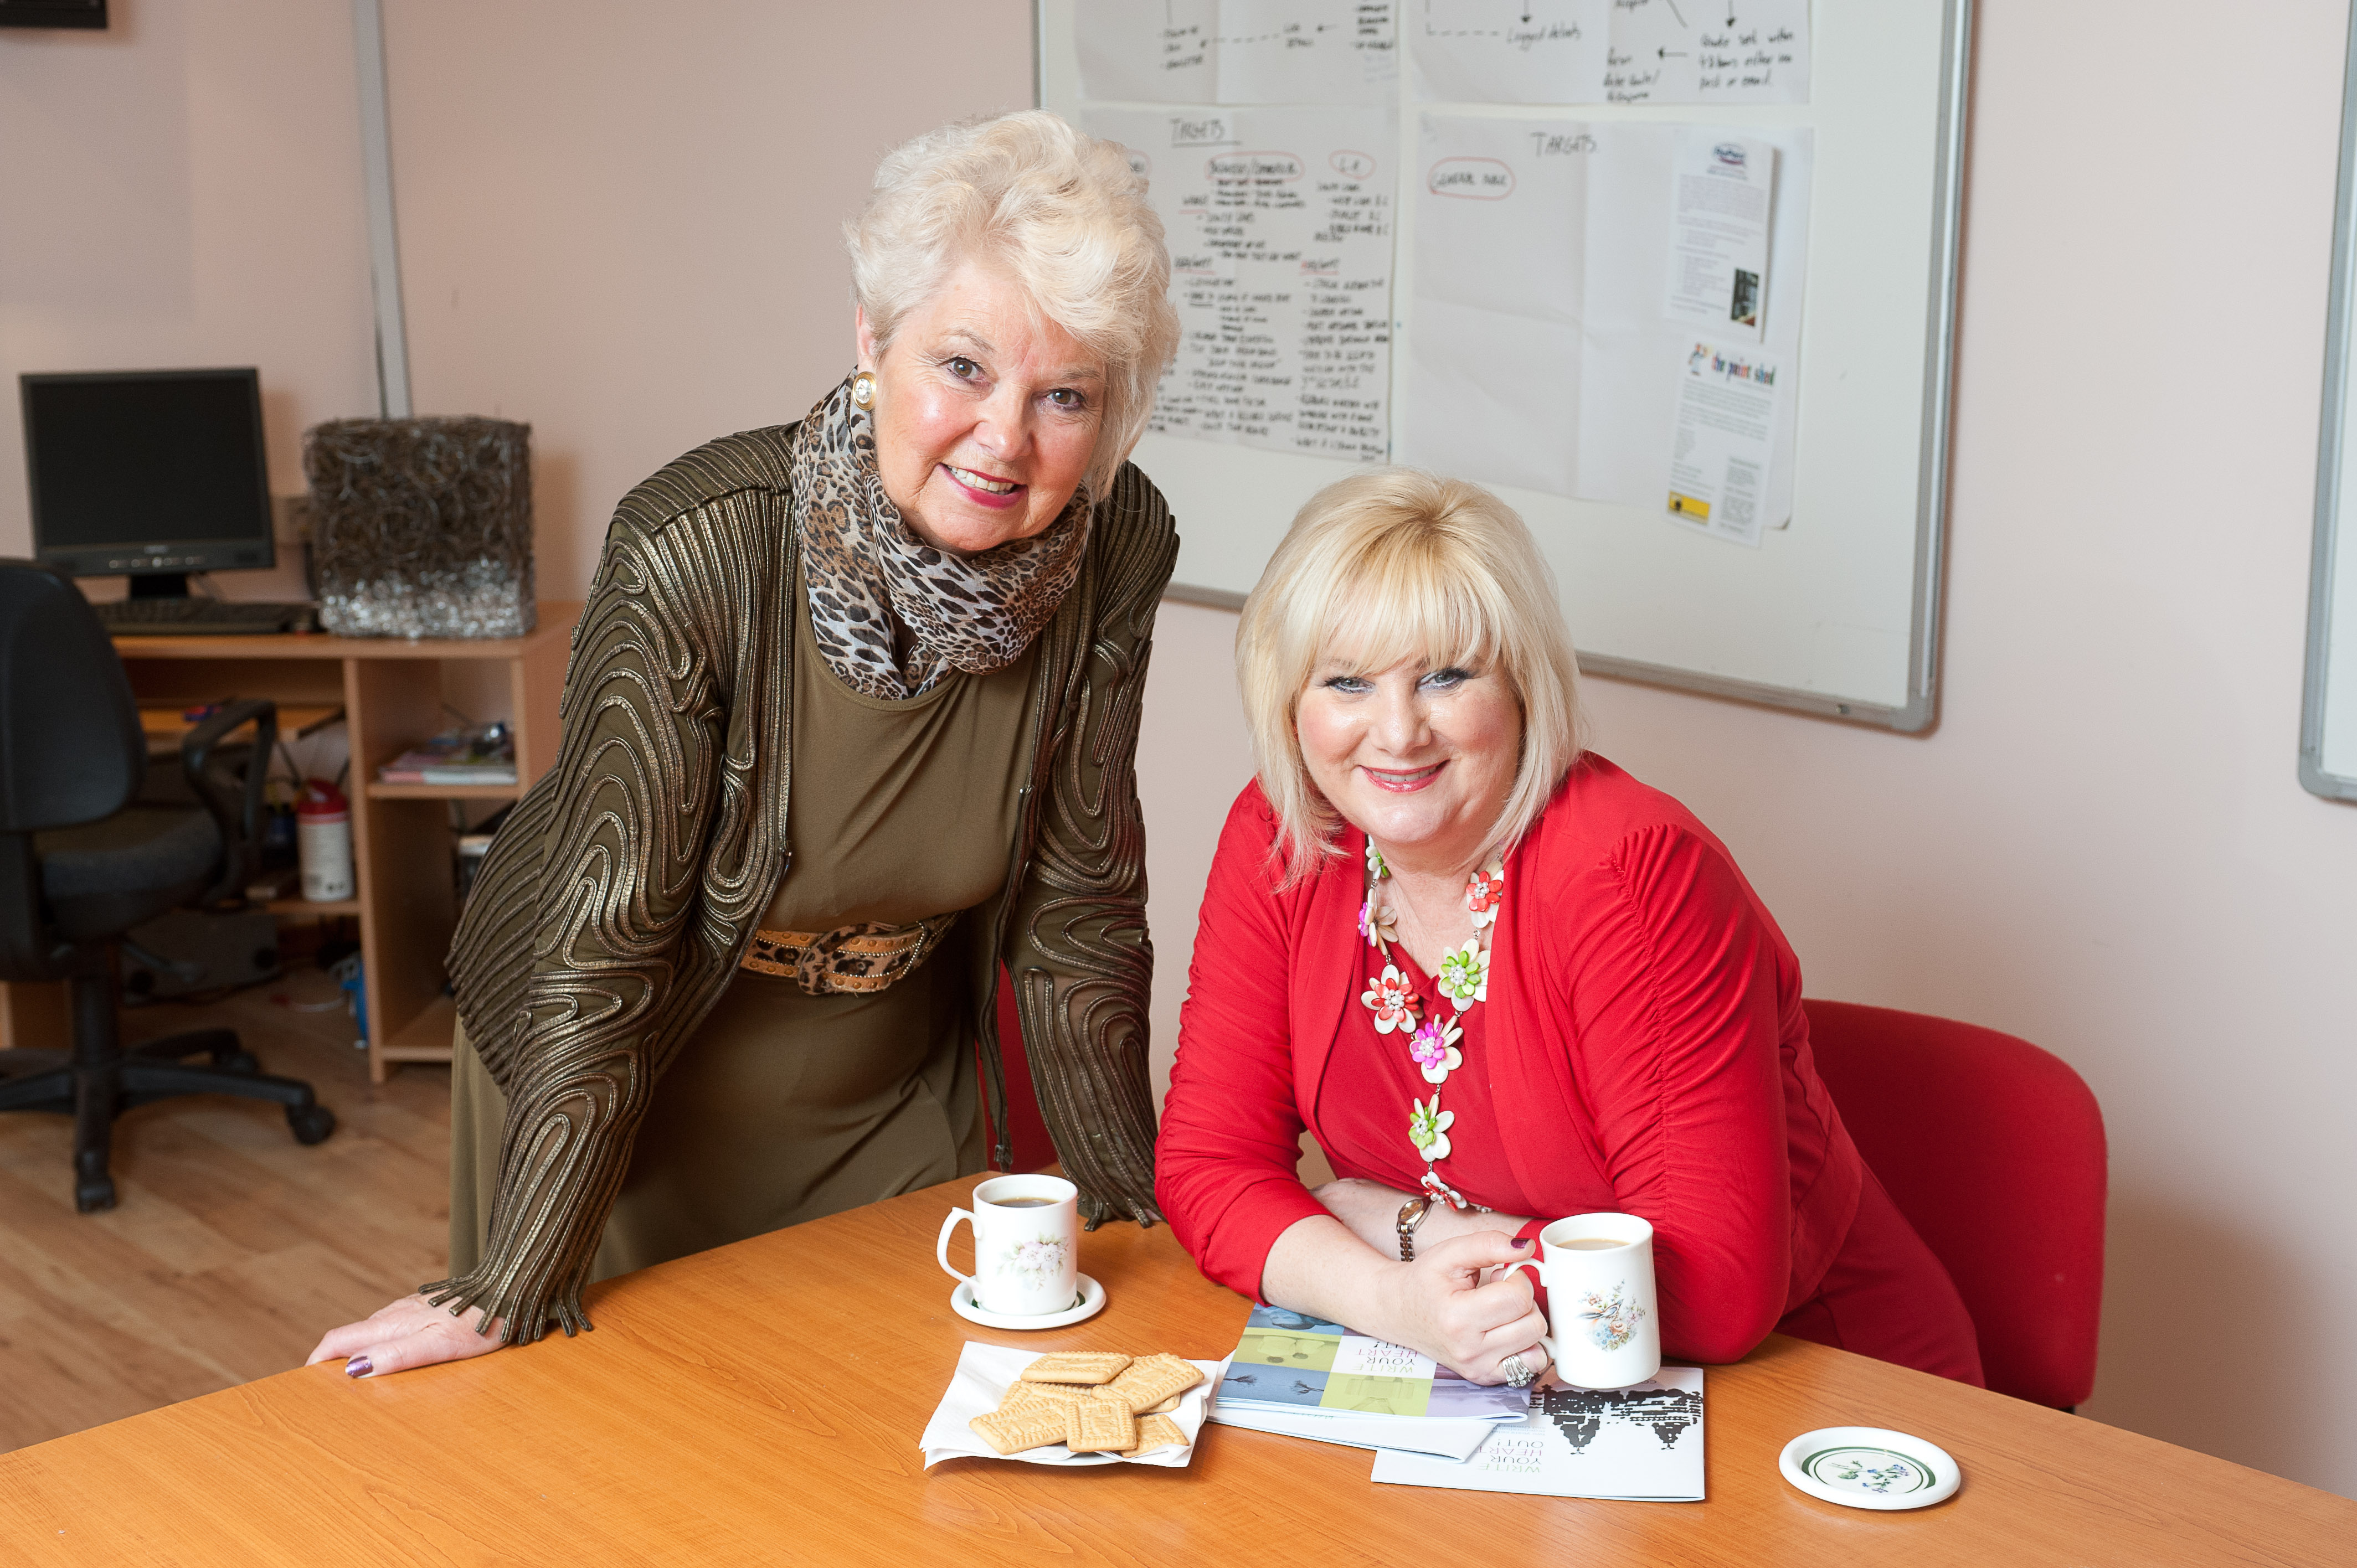 © Mike Poloway/UNP. 01274 412222. Maureen Fazal and Paula Gamester (in red).  Skelmersdale, 23 Oct 2012.